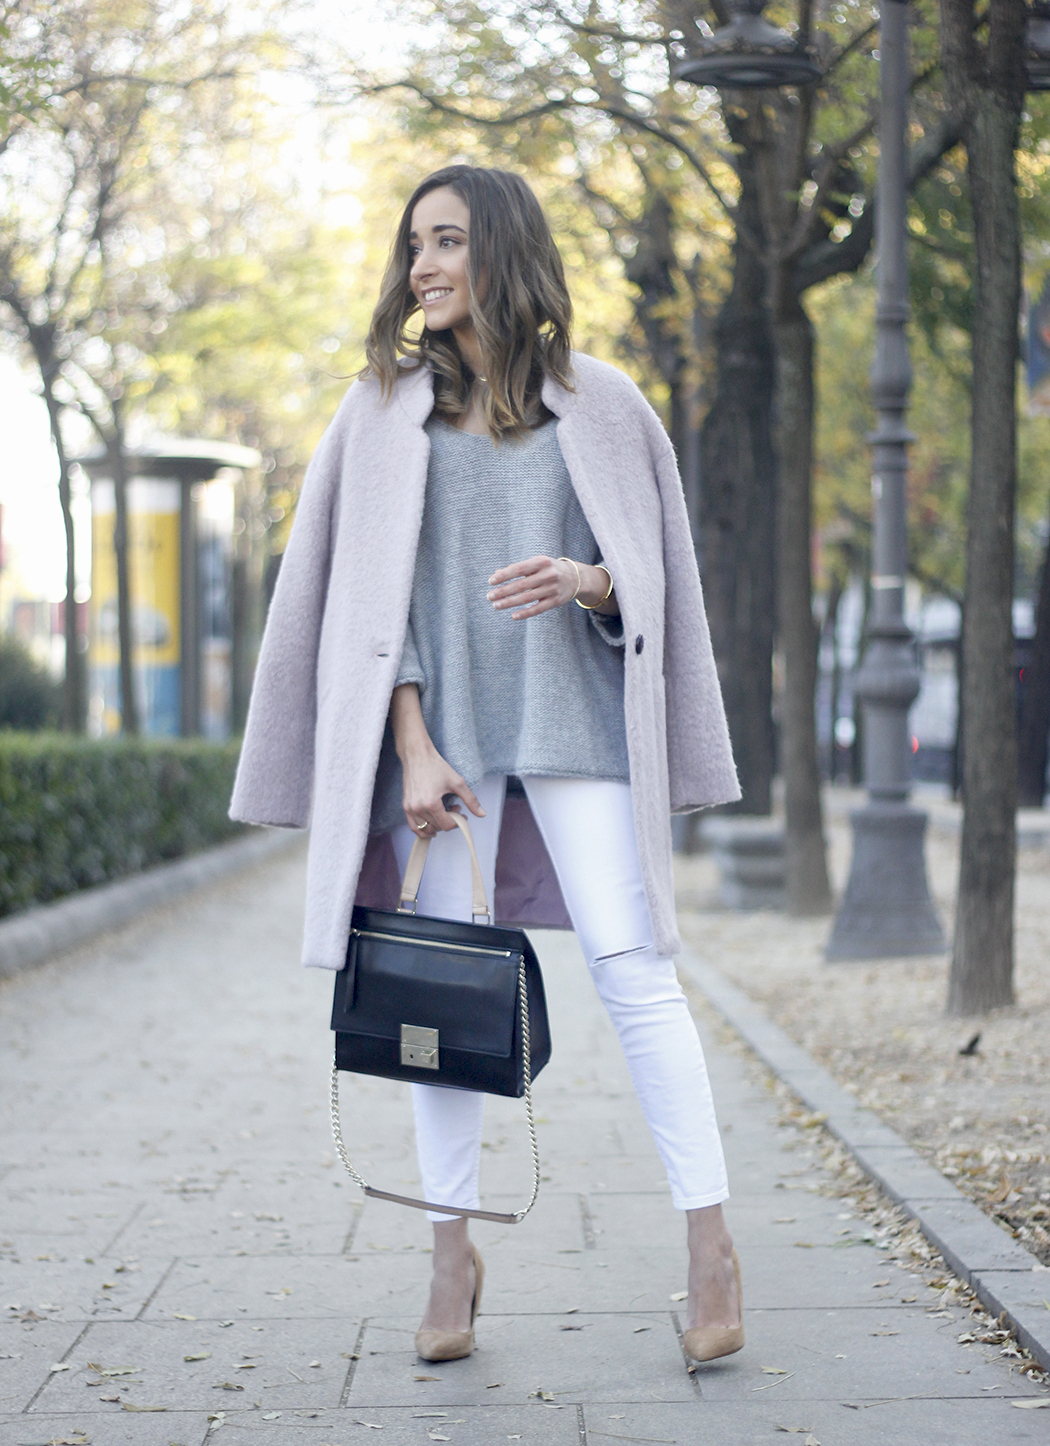 Tintoretto Pink Coat white jeans grey sweater outfit21